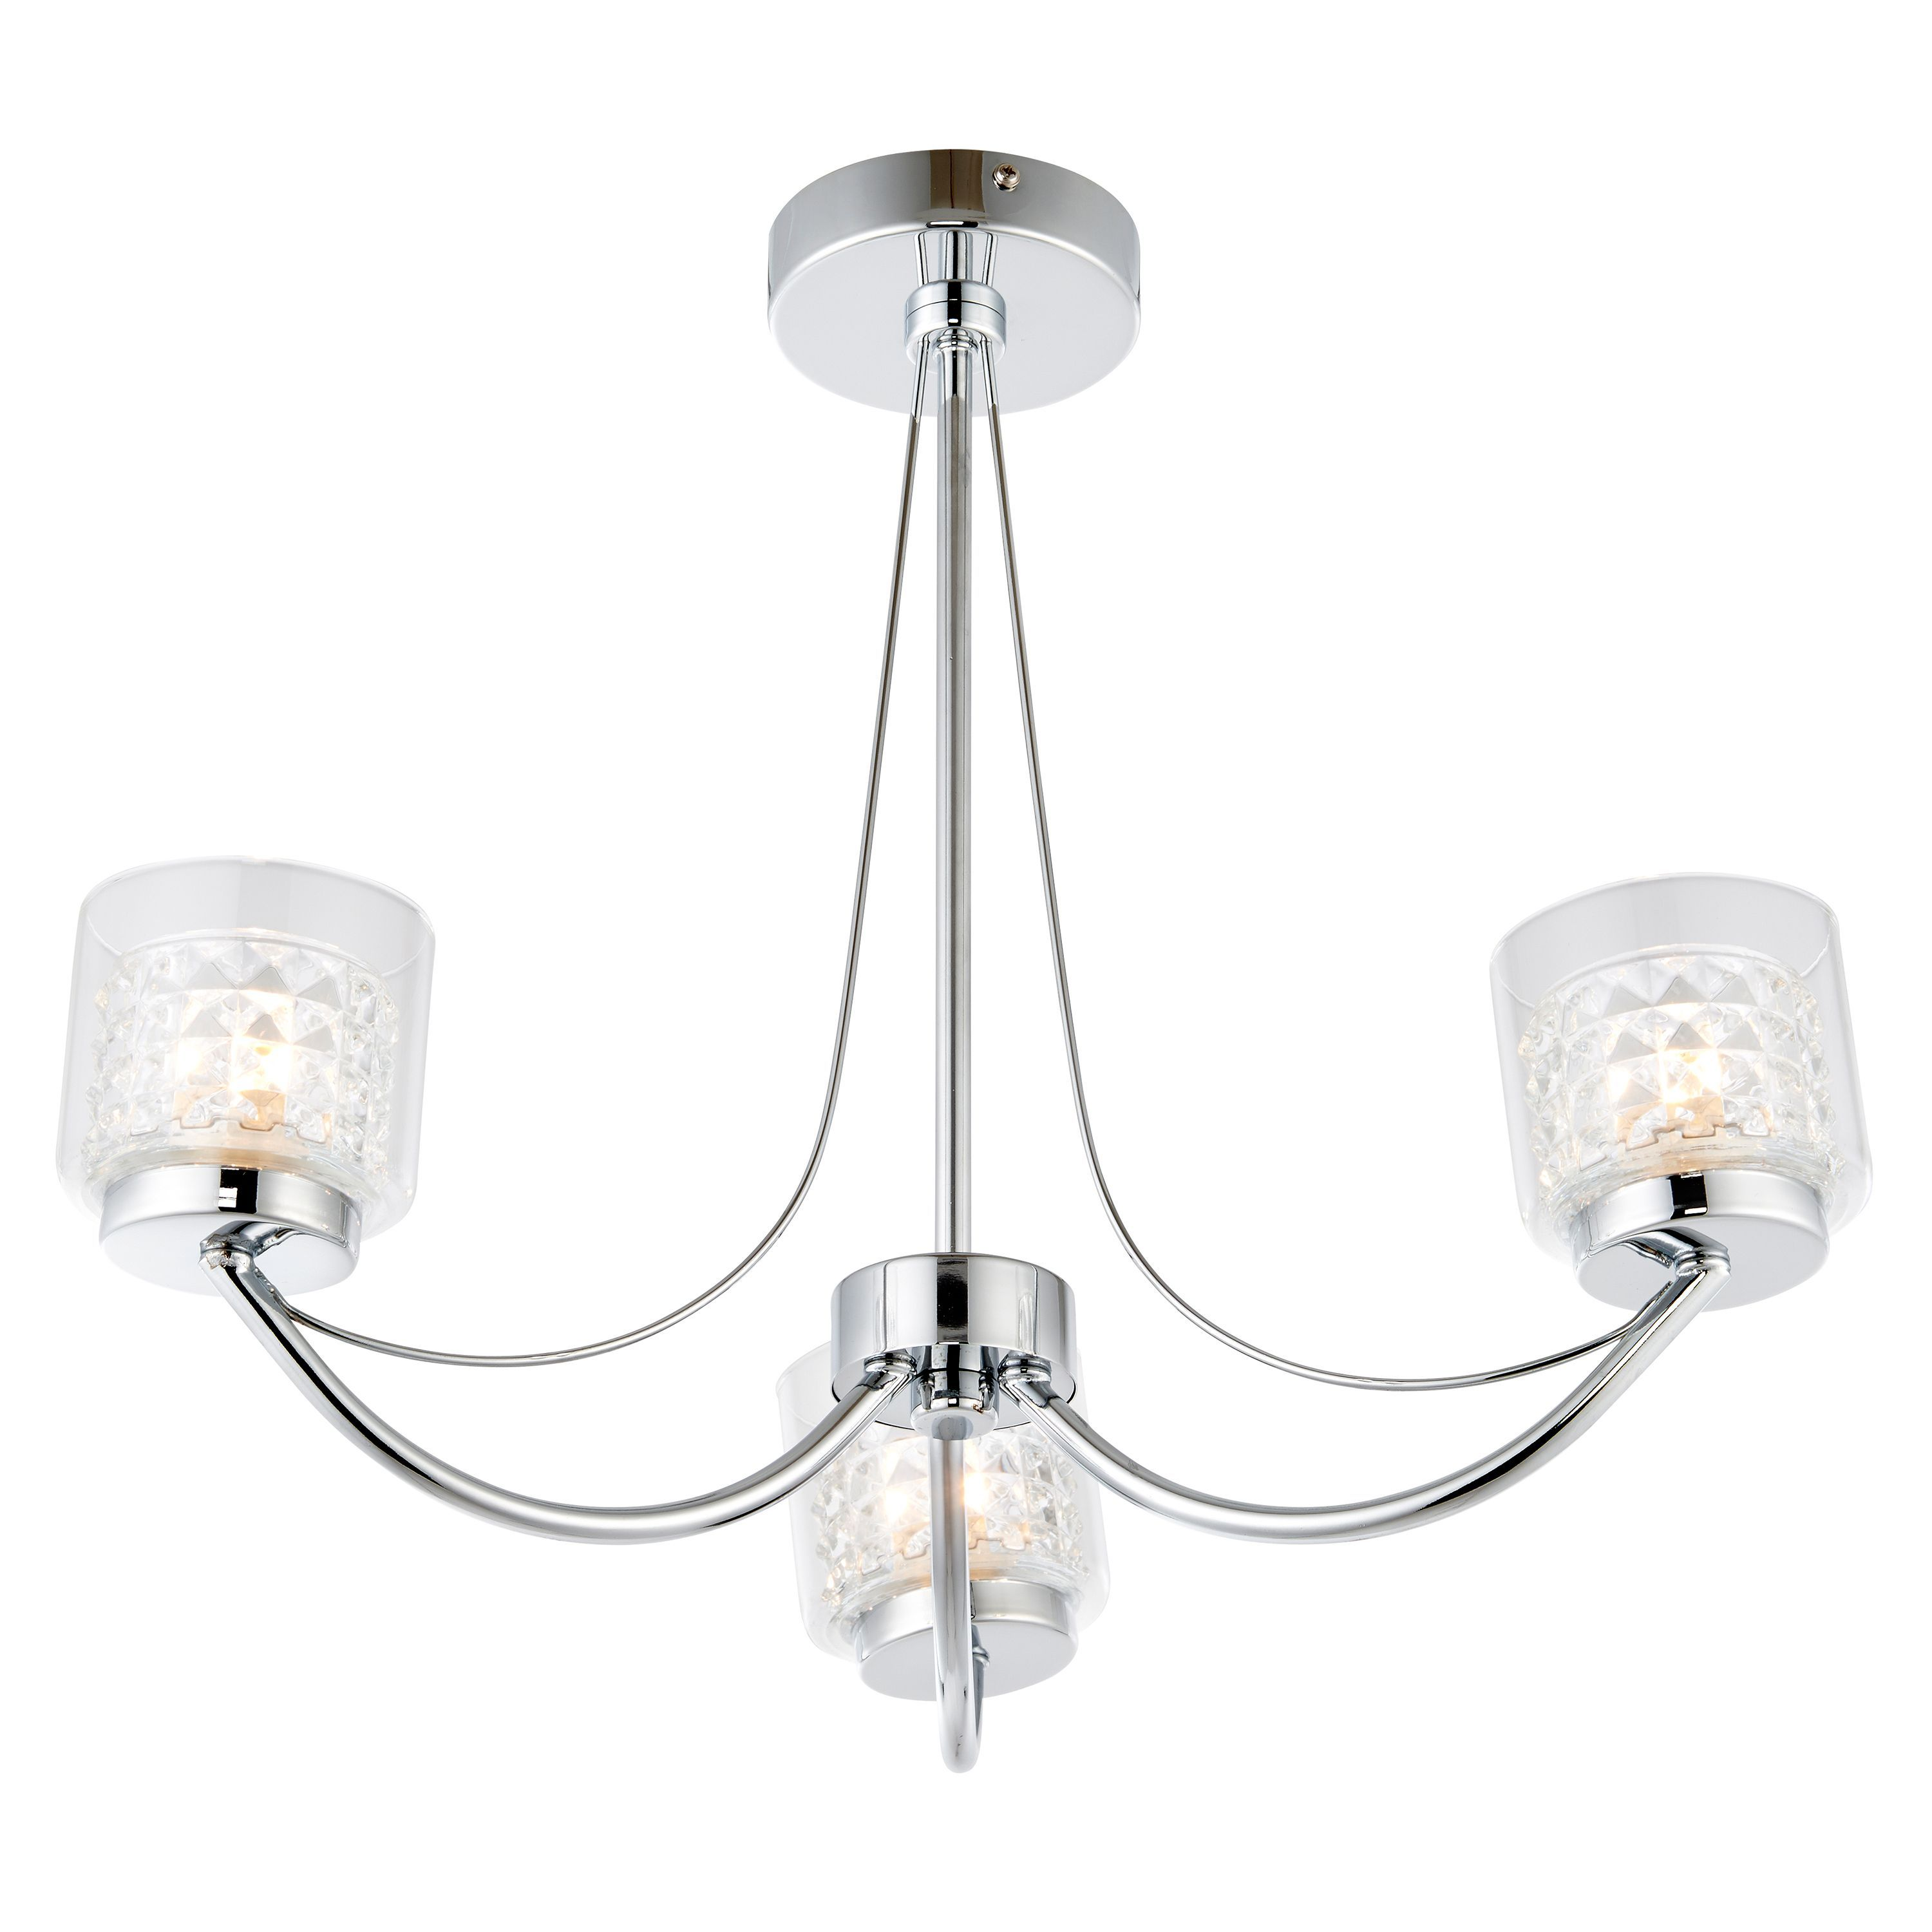 Cromwell Square Cut Glass Chrome Effect 3 Lamp Ceiling Light